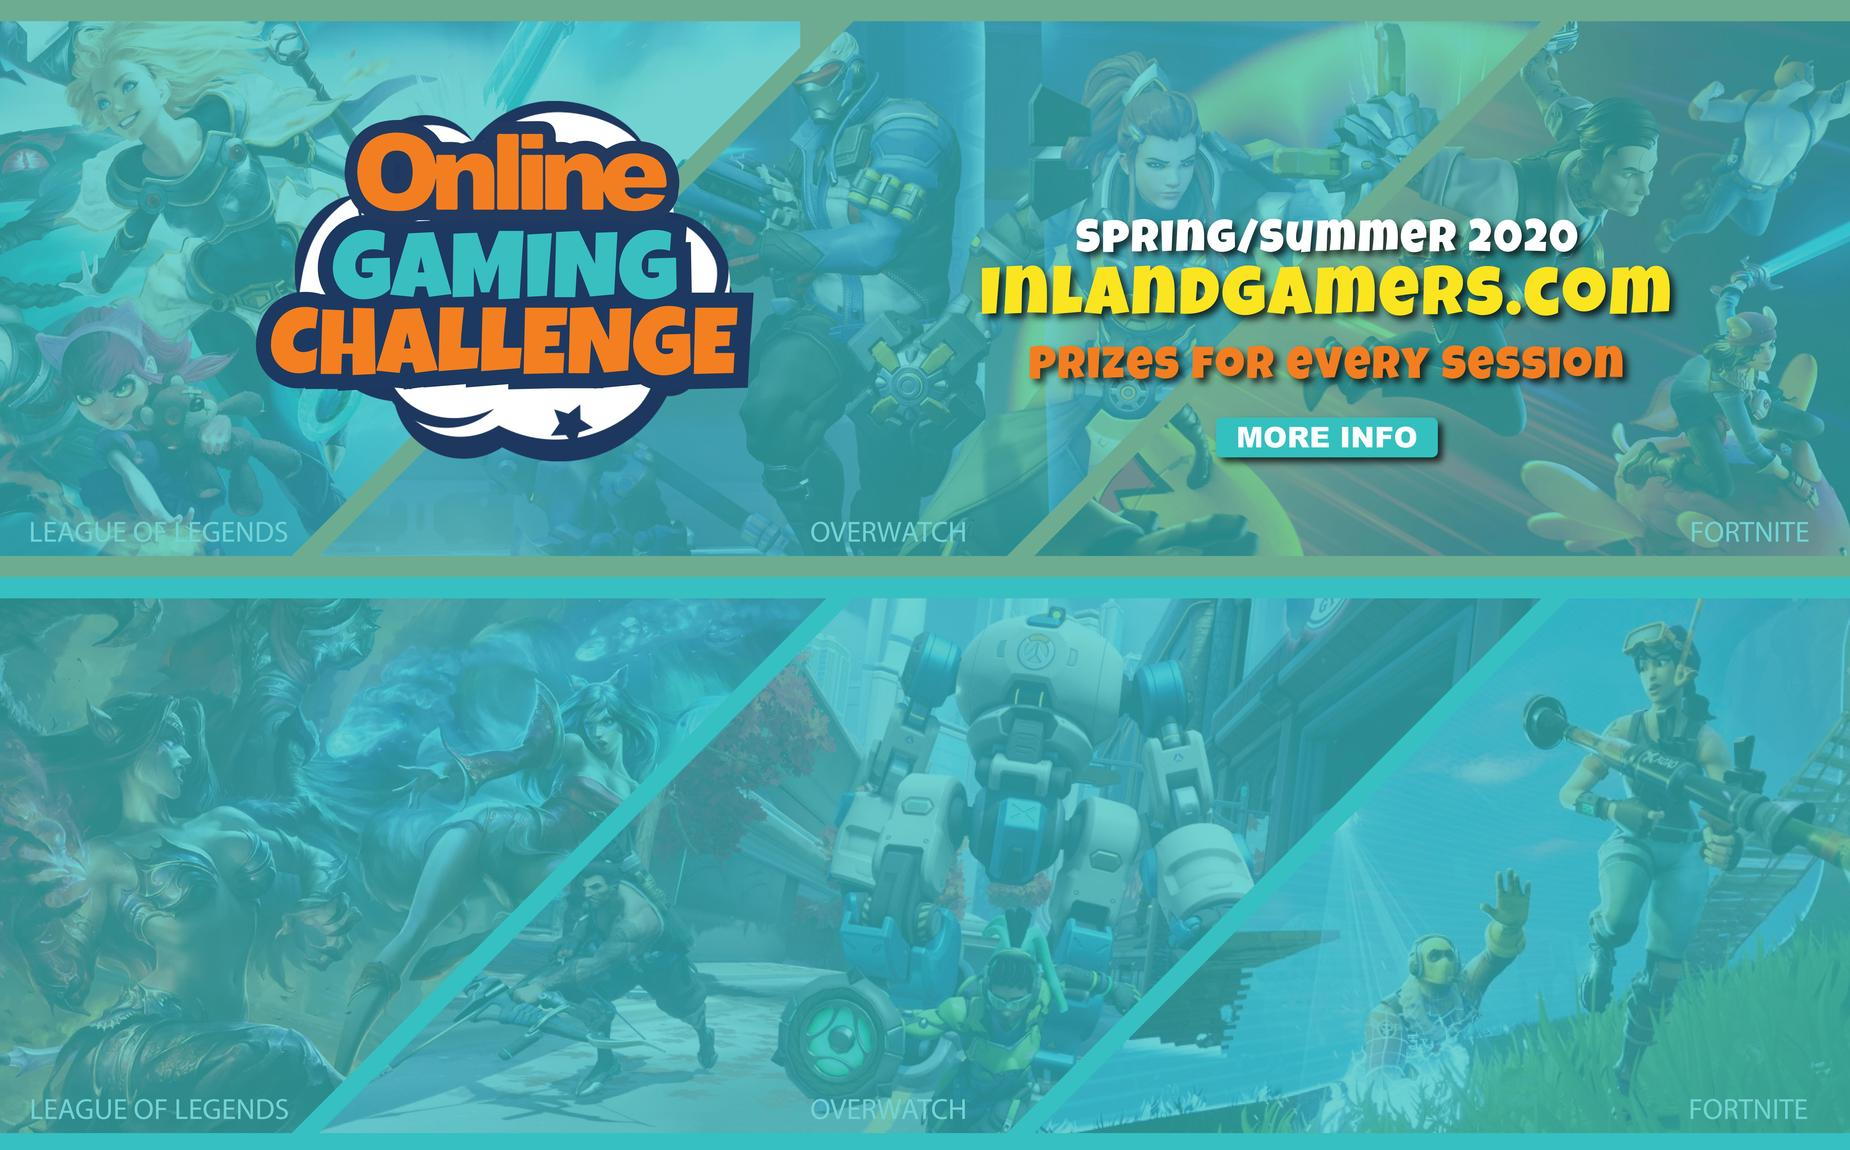 Online Gaming flyer in a teal palette of various games like League of Legends, Fortnite and Super Smash Bros action shots faded in the background. Flyer says